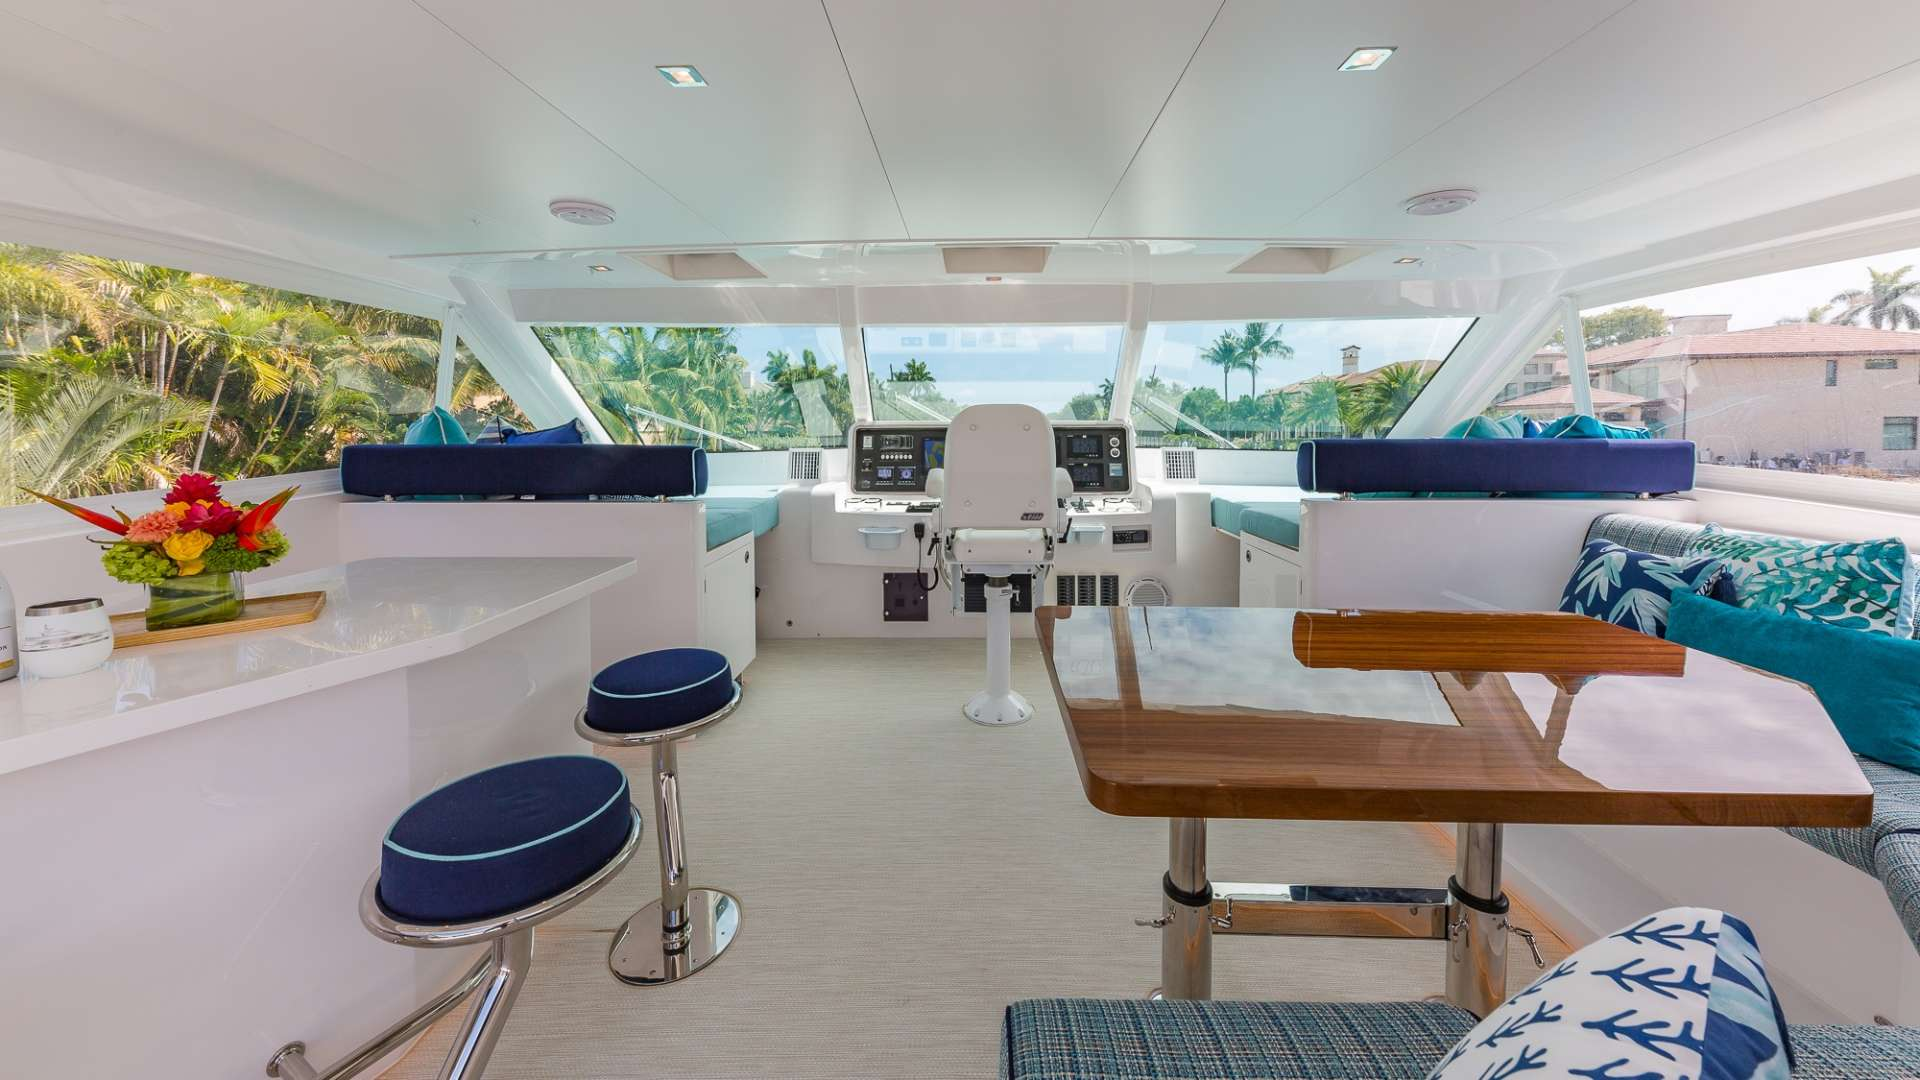 Flybridge lounging and dining area